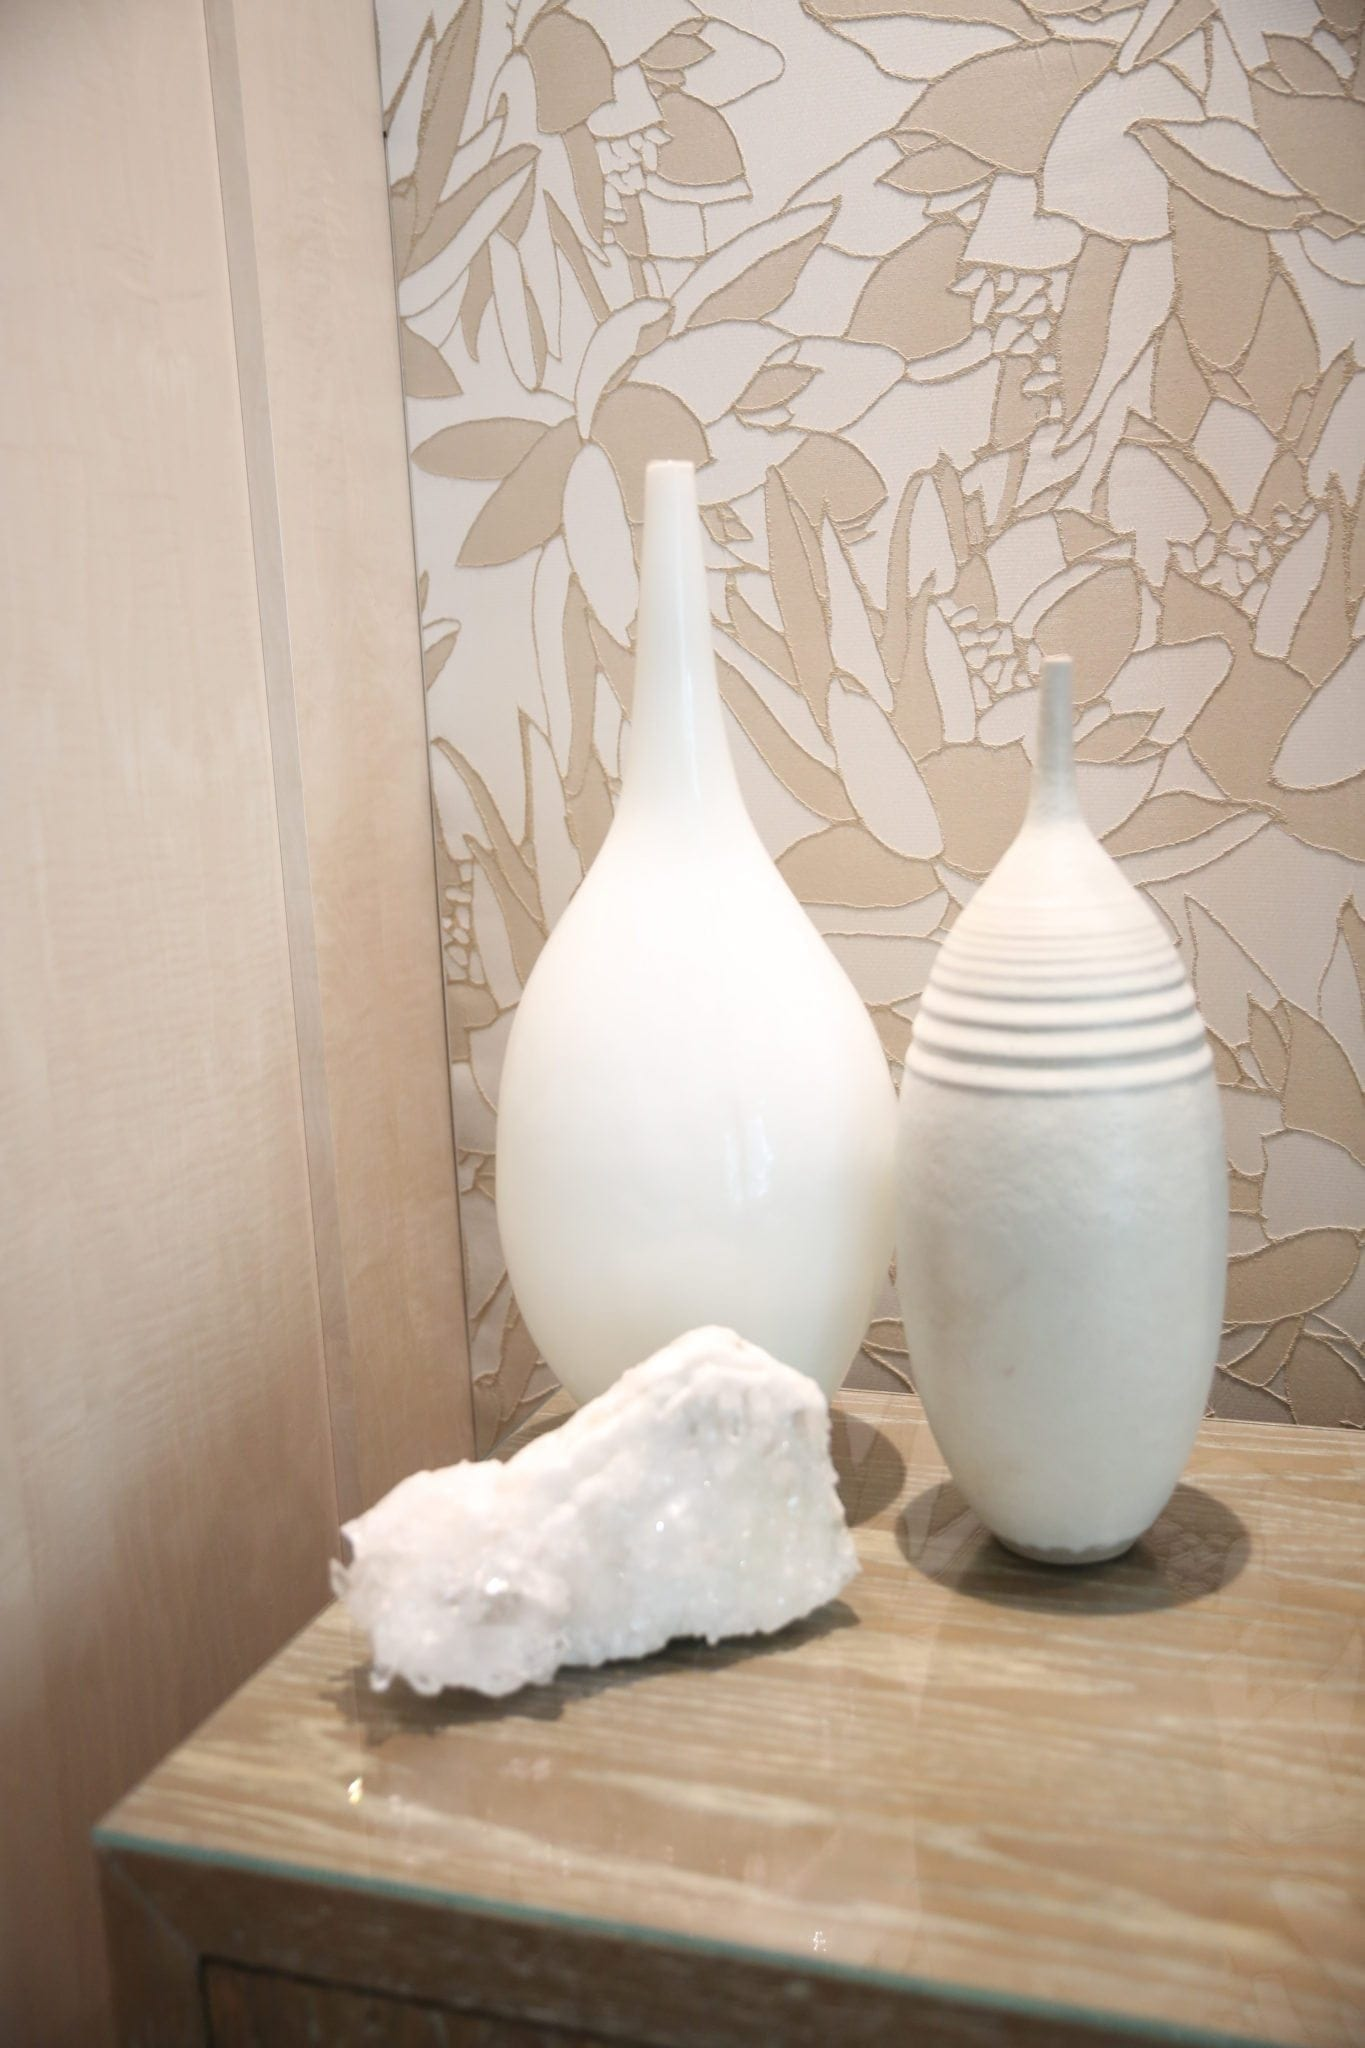 white urns for home decor with a neutral leaf wallpaper decor for how to decorate in neutral tones